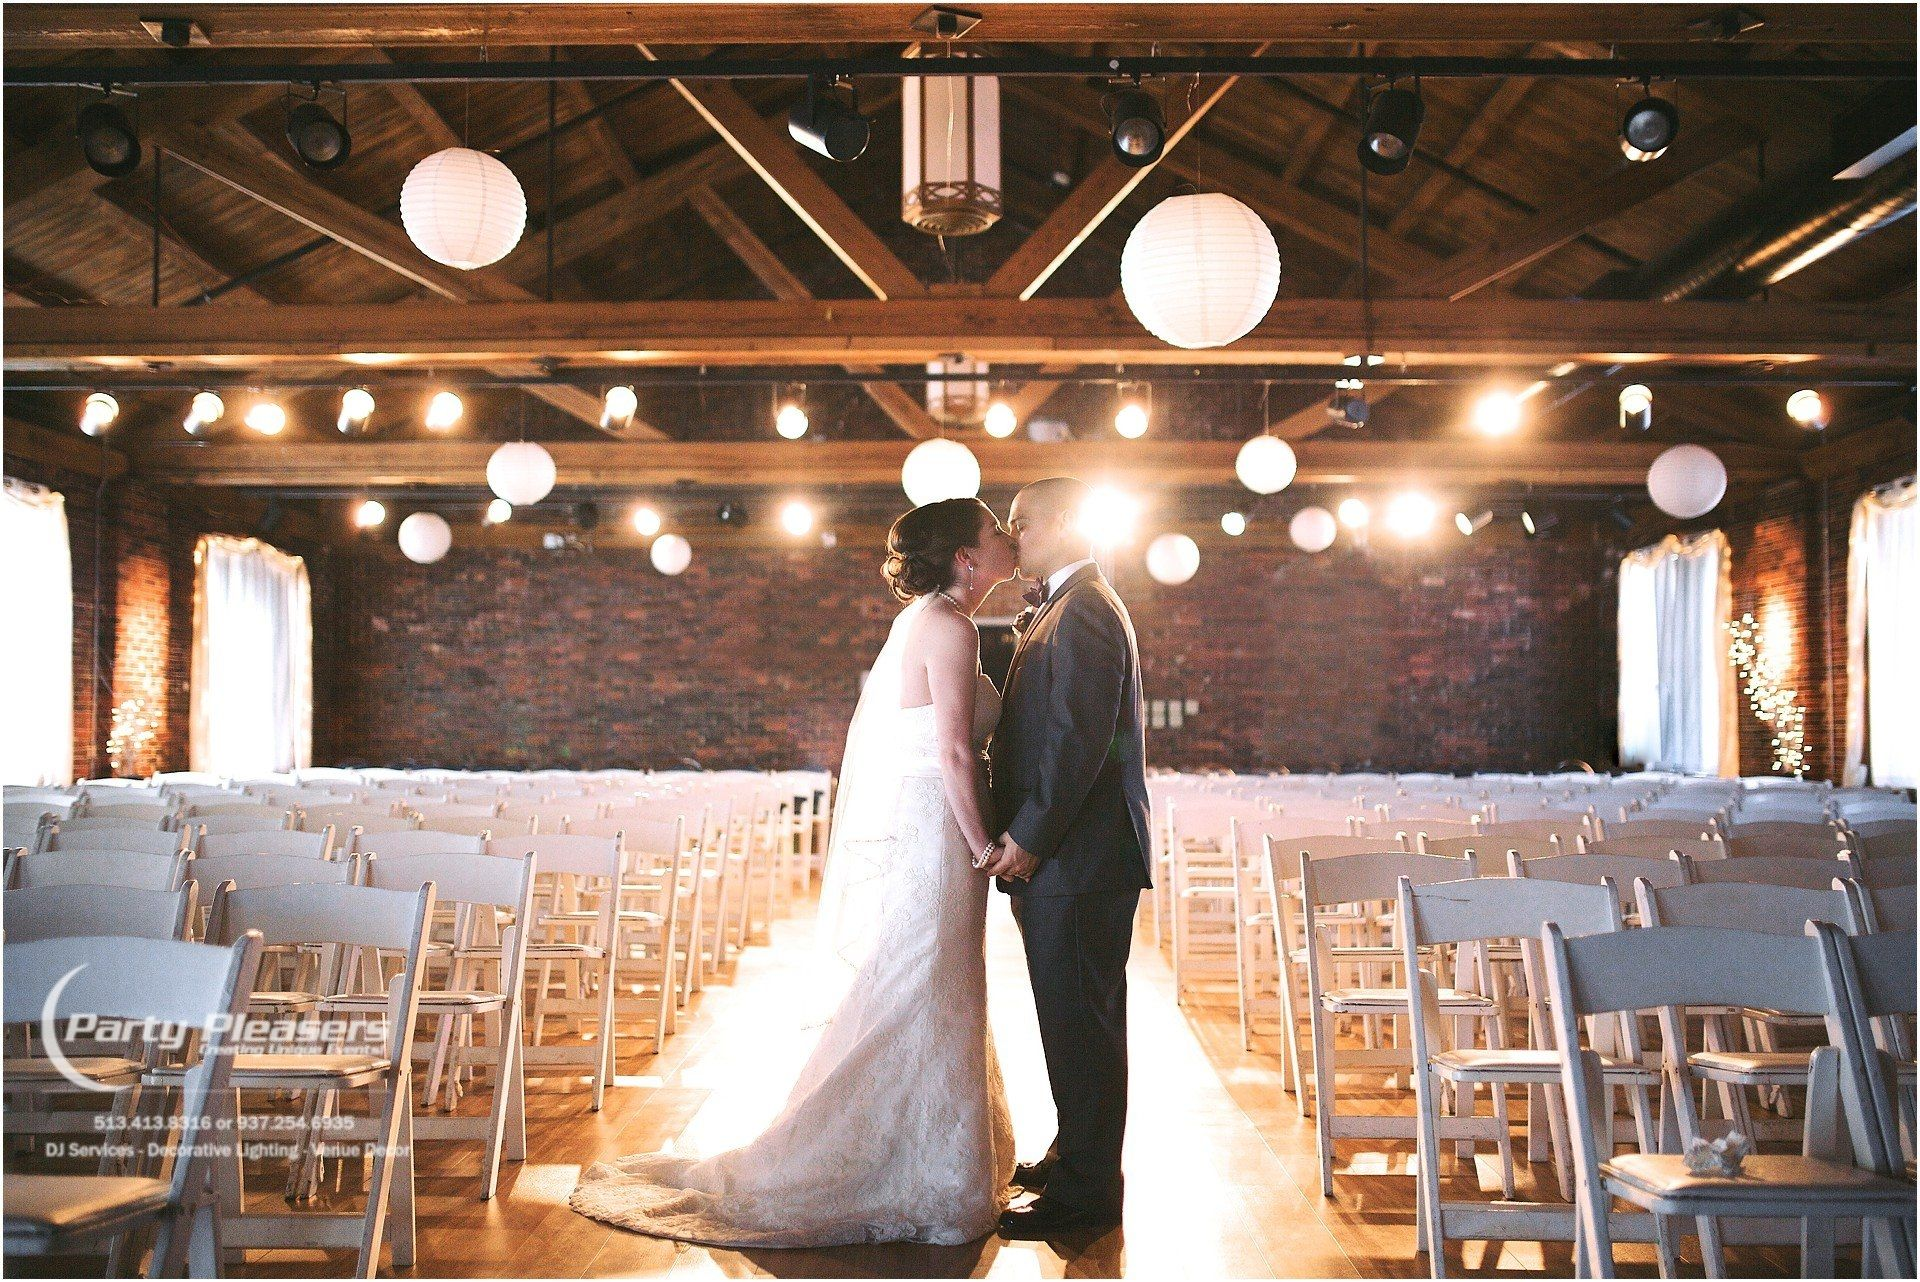 Top Of The Market Stomped Photography With Images Wedding Rentals Framing Photography Wedding Ceremony